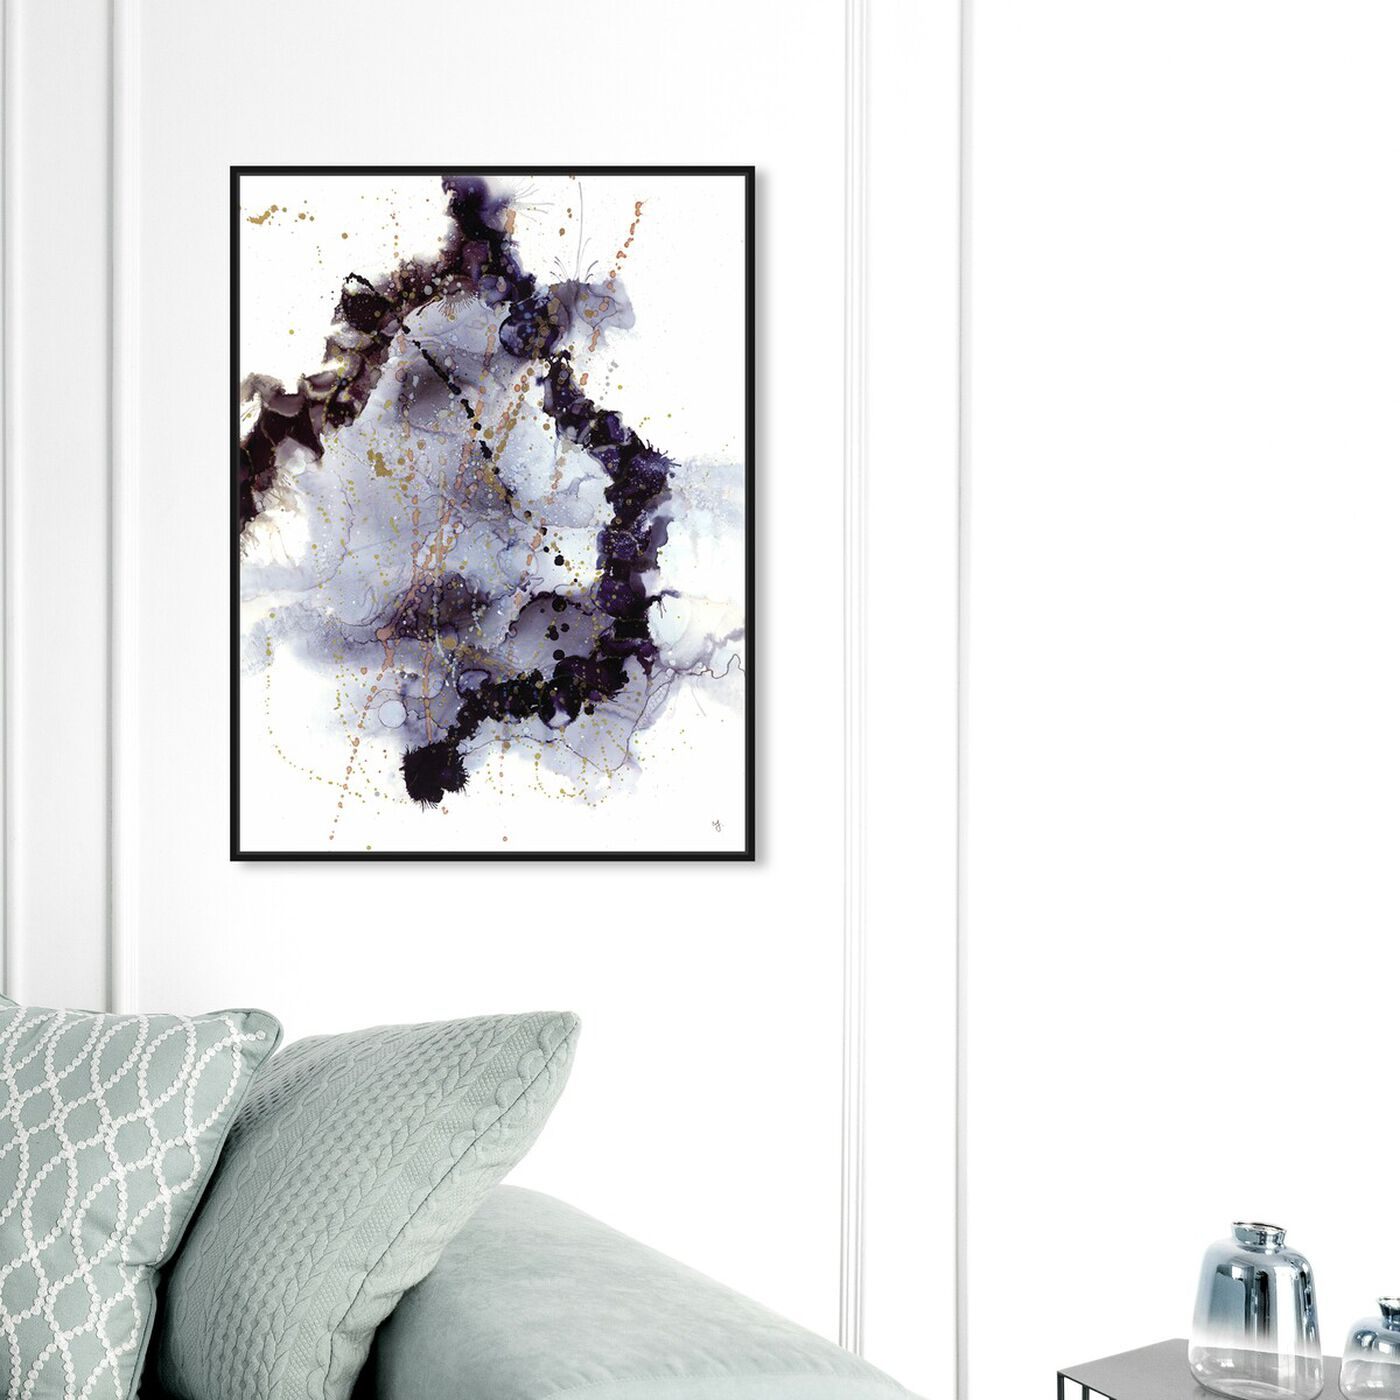 Hanging view of Jamie Blicher - Onice featuring abstract and watercolor art.